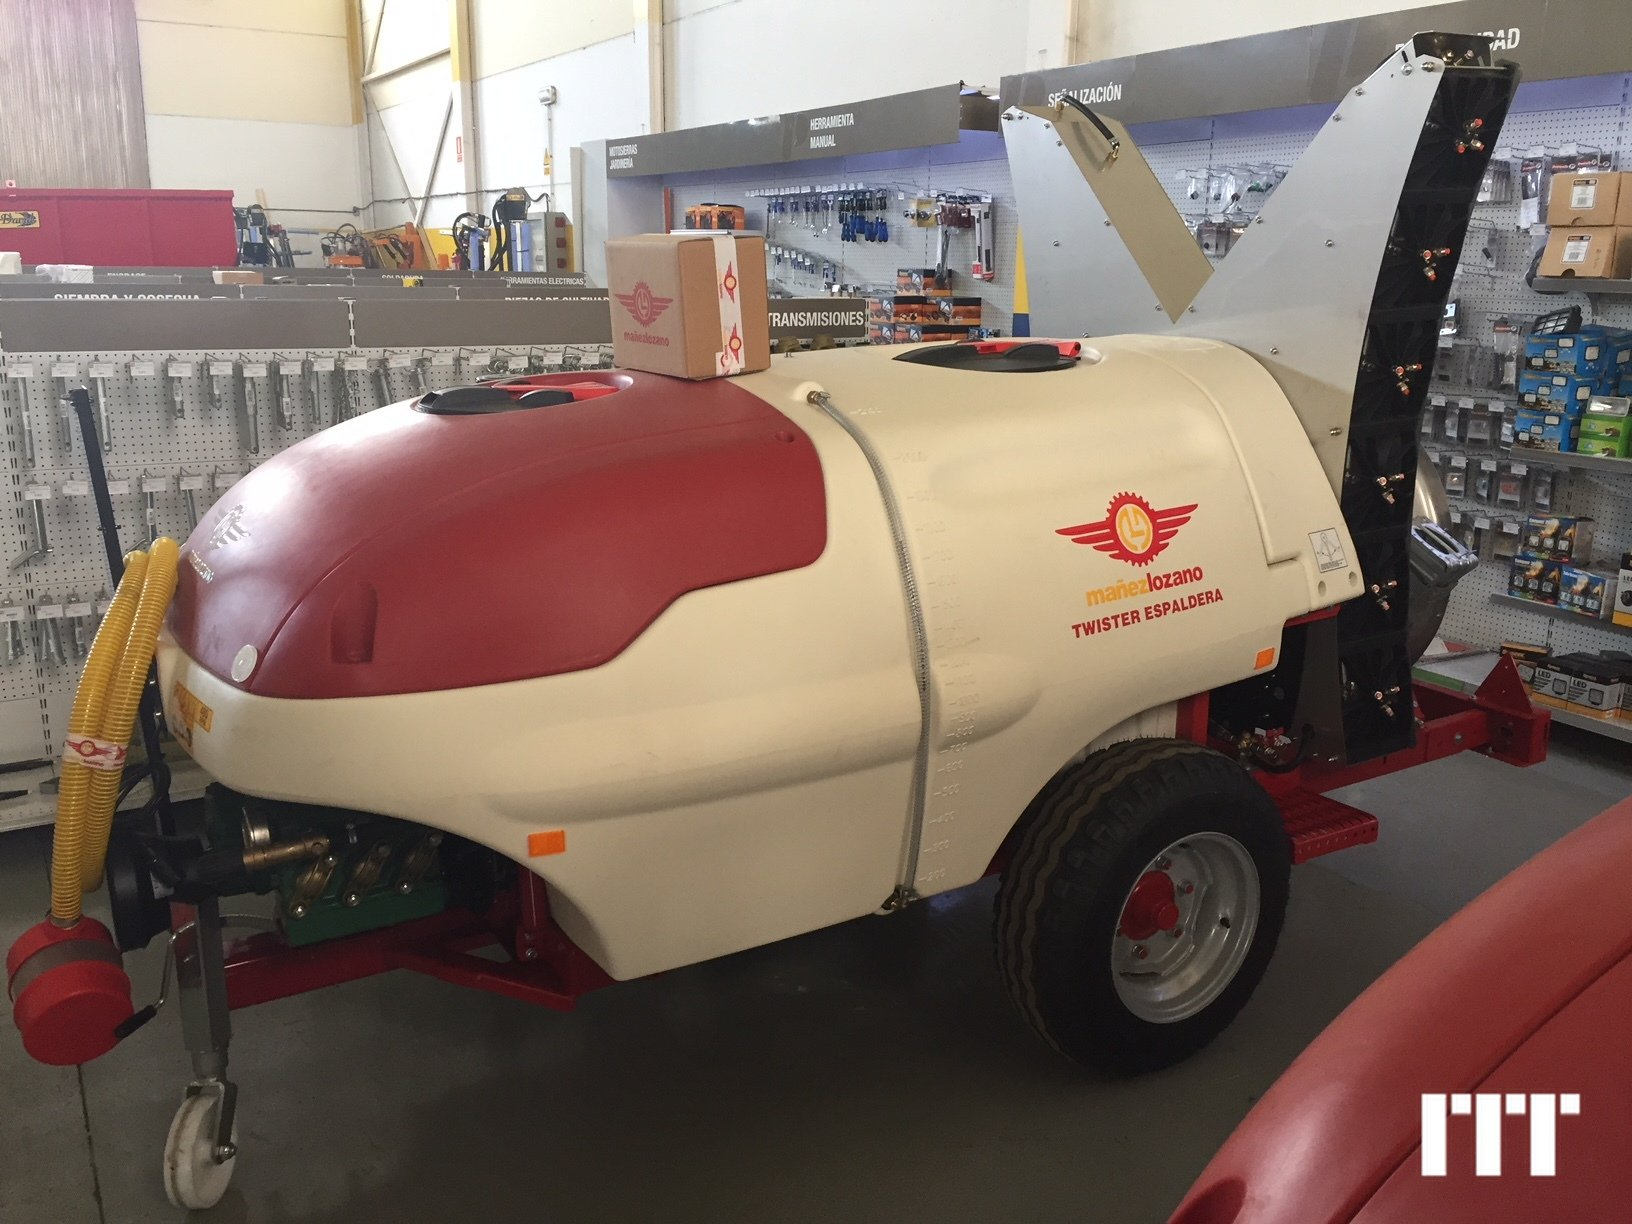 Trees sprayer Mañez y Lozano TWISTER 1500L - 1